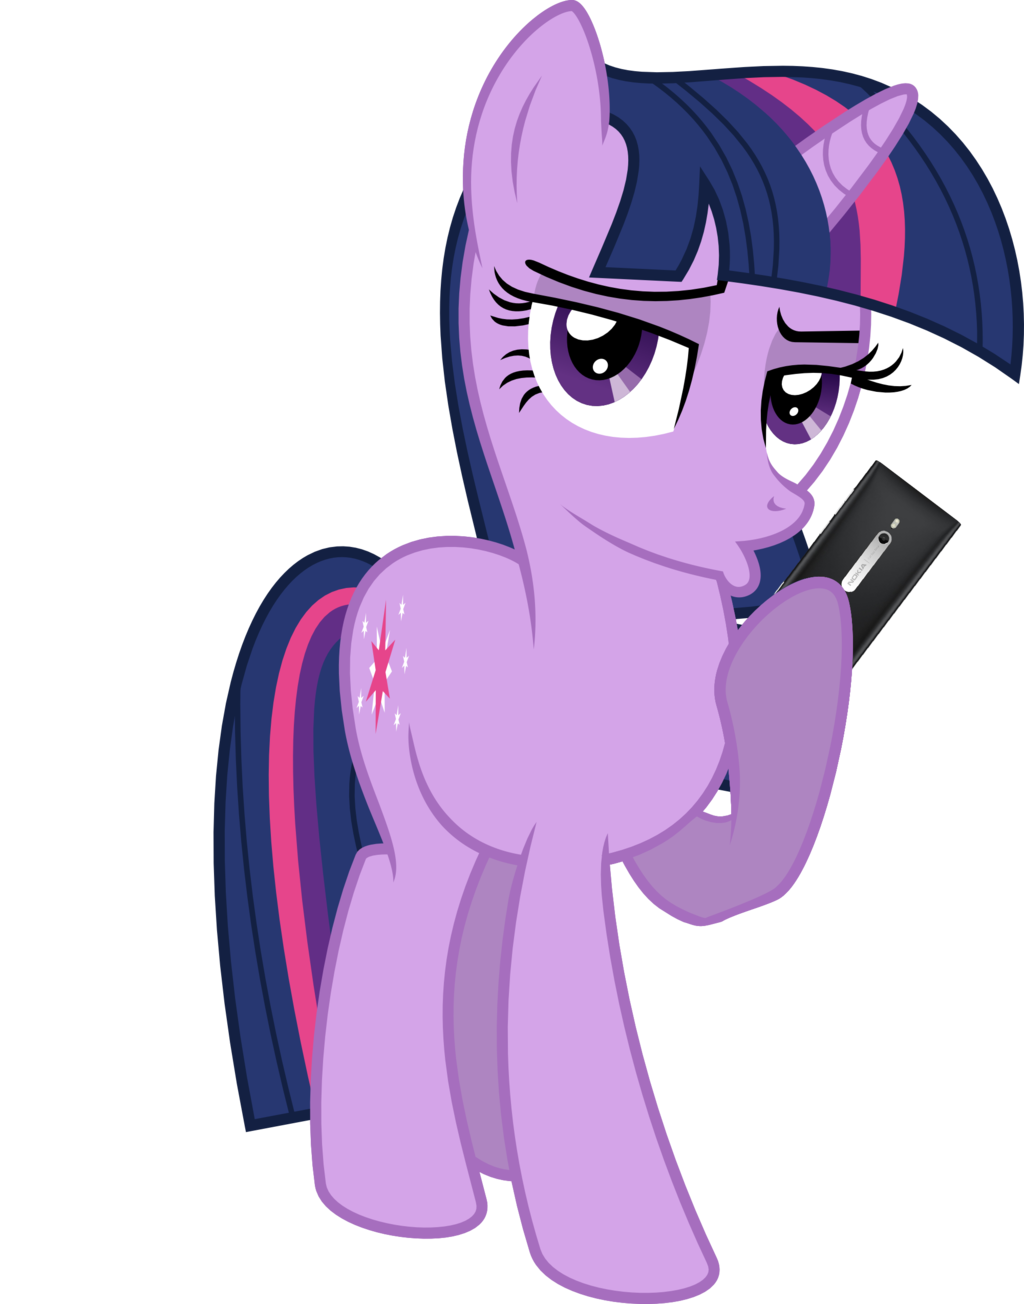 Mlp air horn png. Image when twilight sparkle